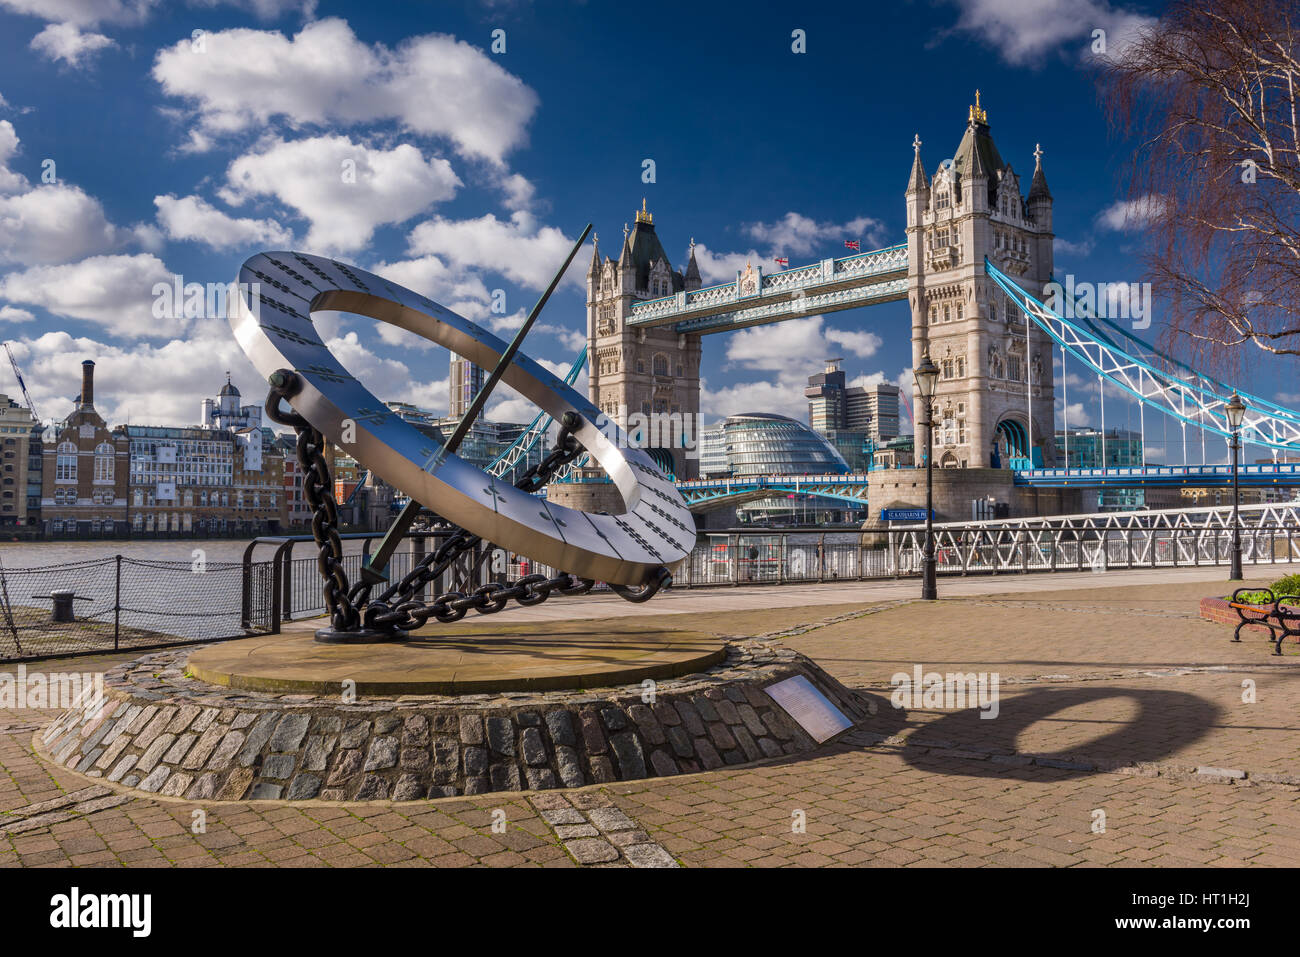 The Tower Hotel Sundial, designed by Wendy Taylor, with Tower Bridge in the background on a cold but bright day - Stock Image